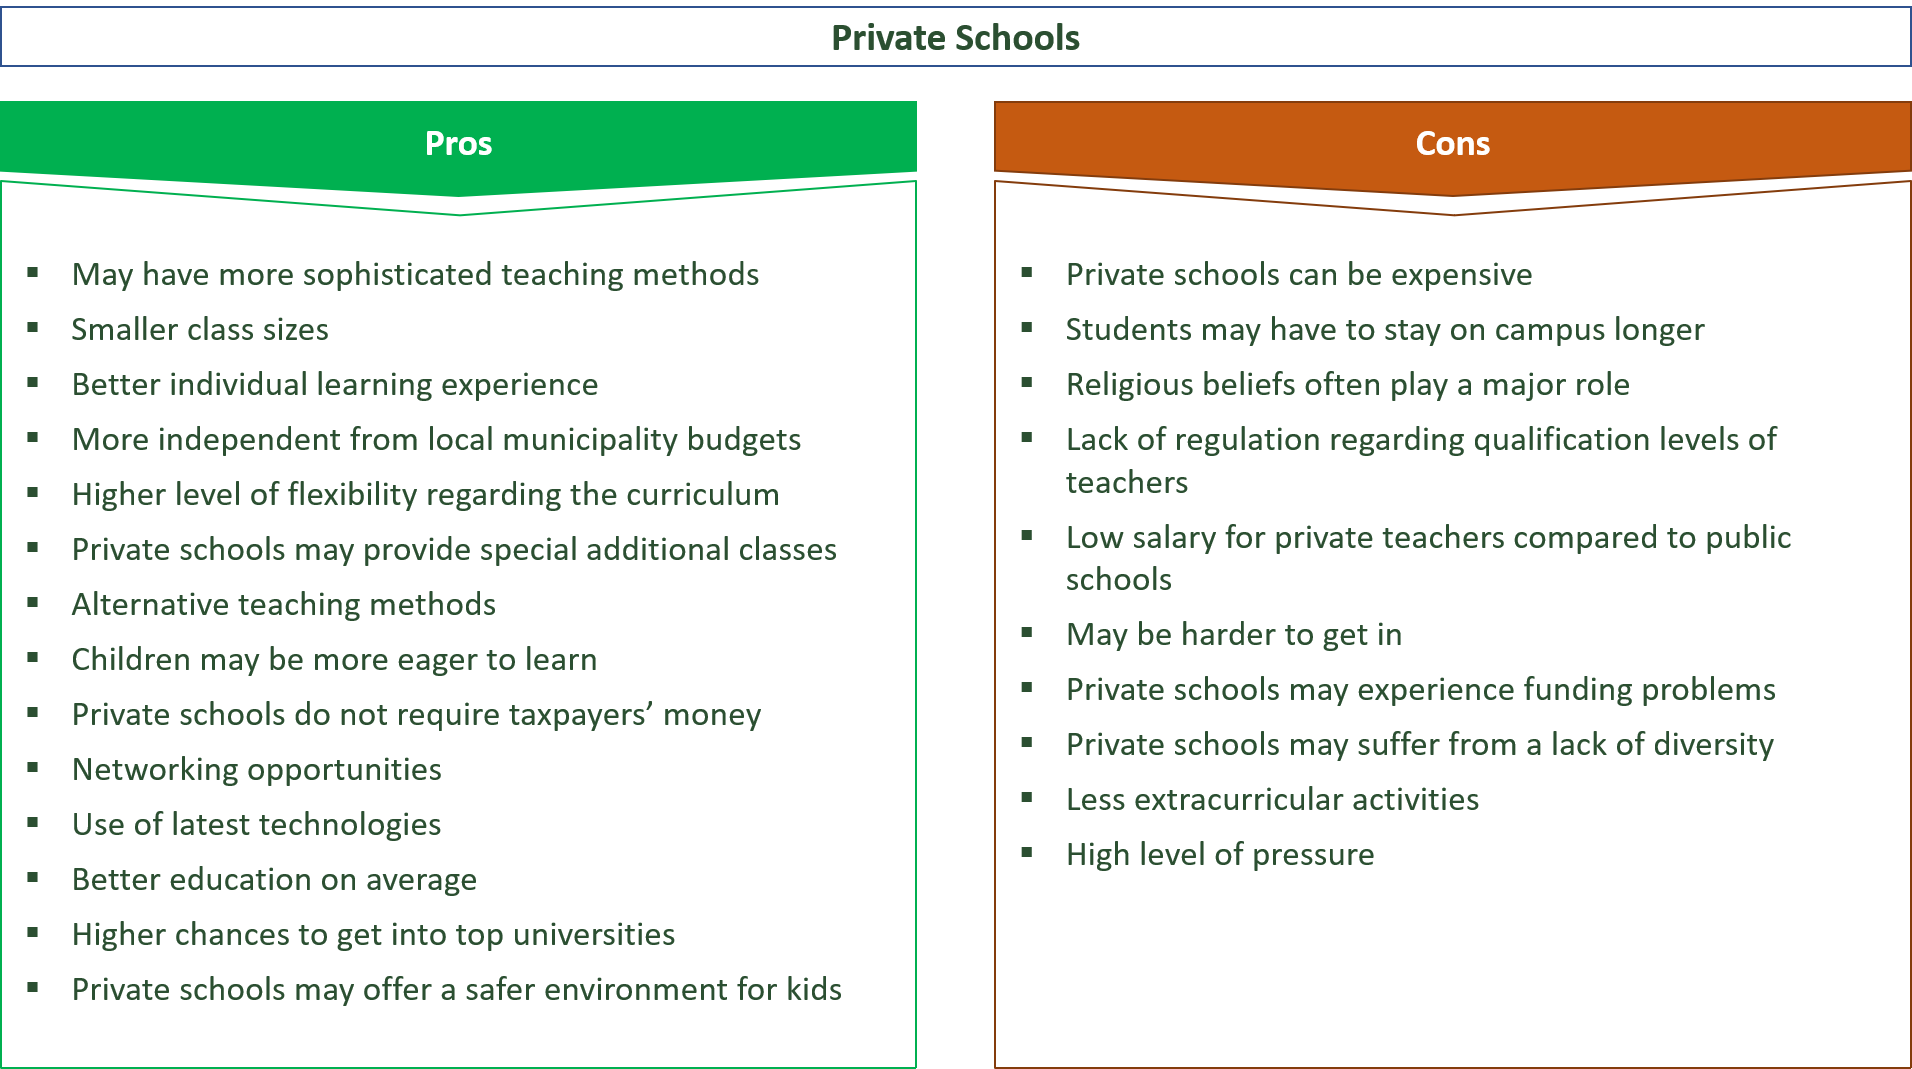 pros and cons of private schools compared to public schools